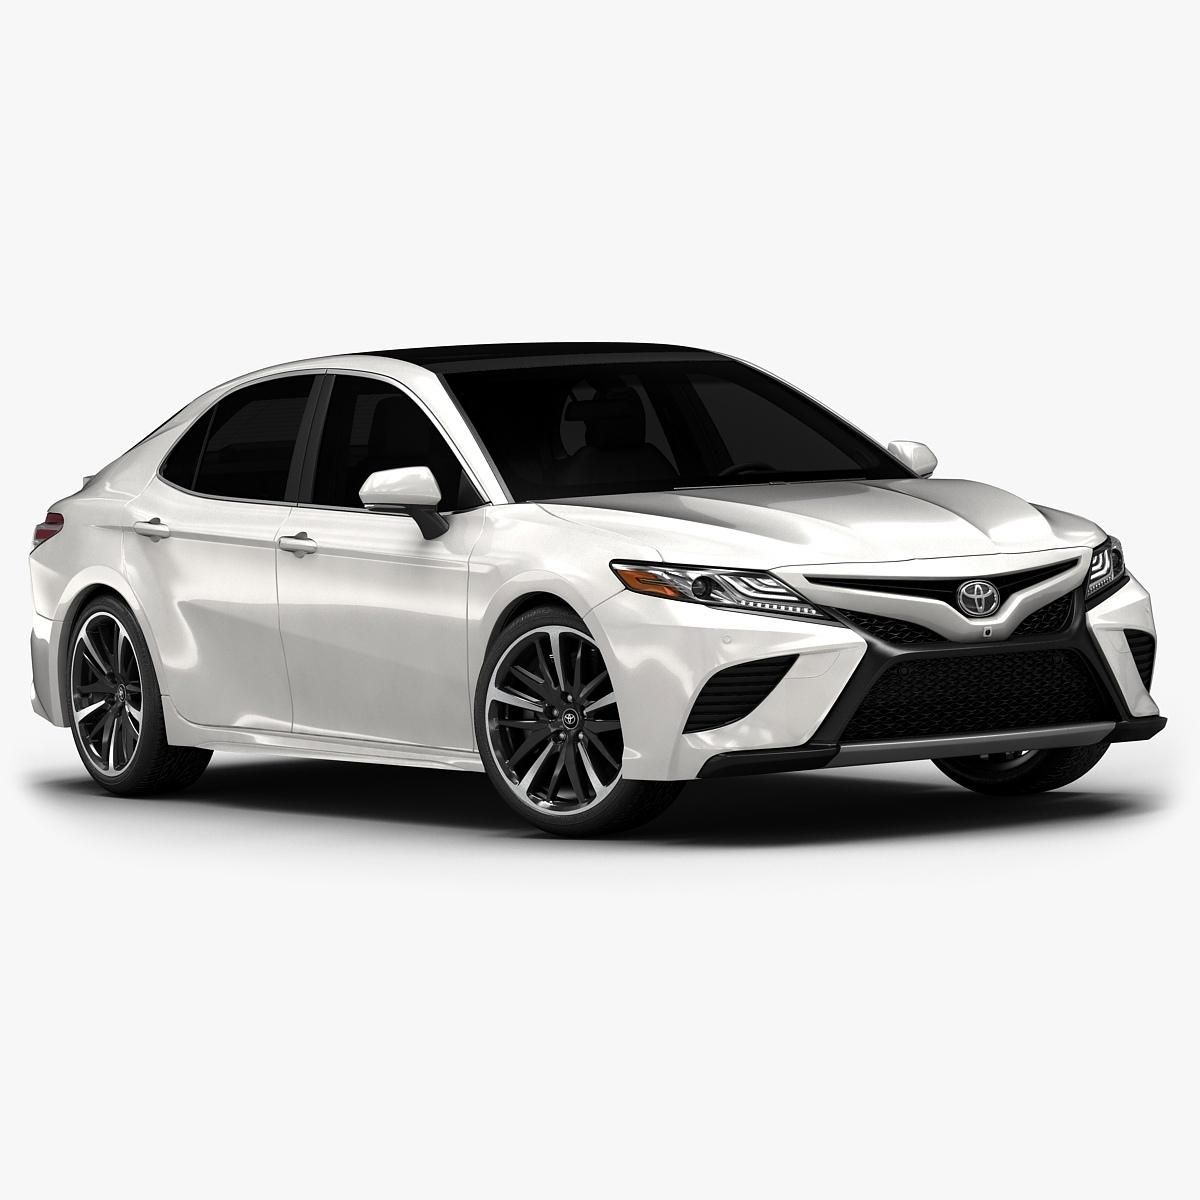 2018 Toyota Camry (Low Interior) 3D Model AD ,Toyota